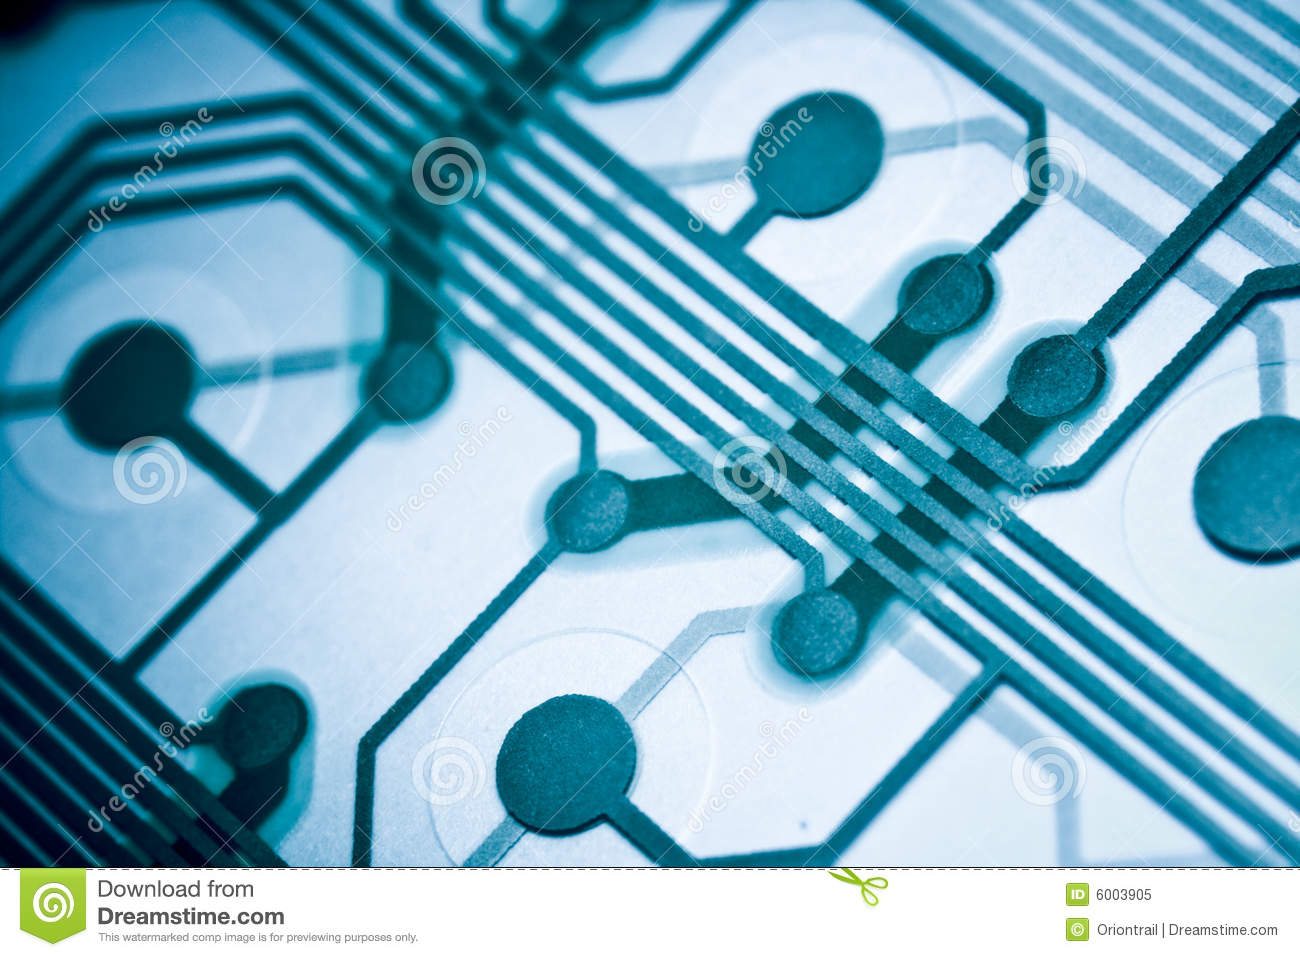 blue circuit board stock image image of micro, closeup 6003905royalty free stock photo blue circuit board